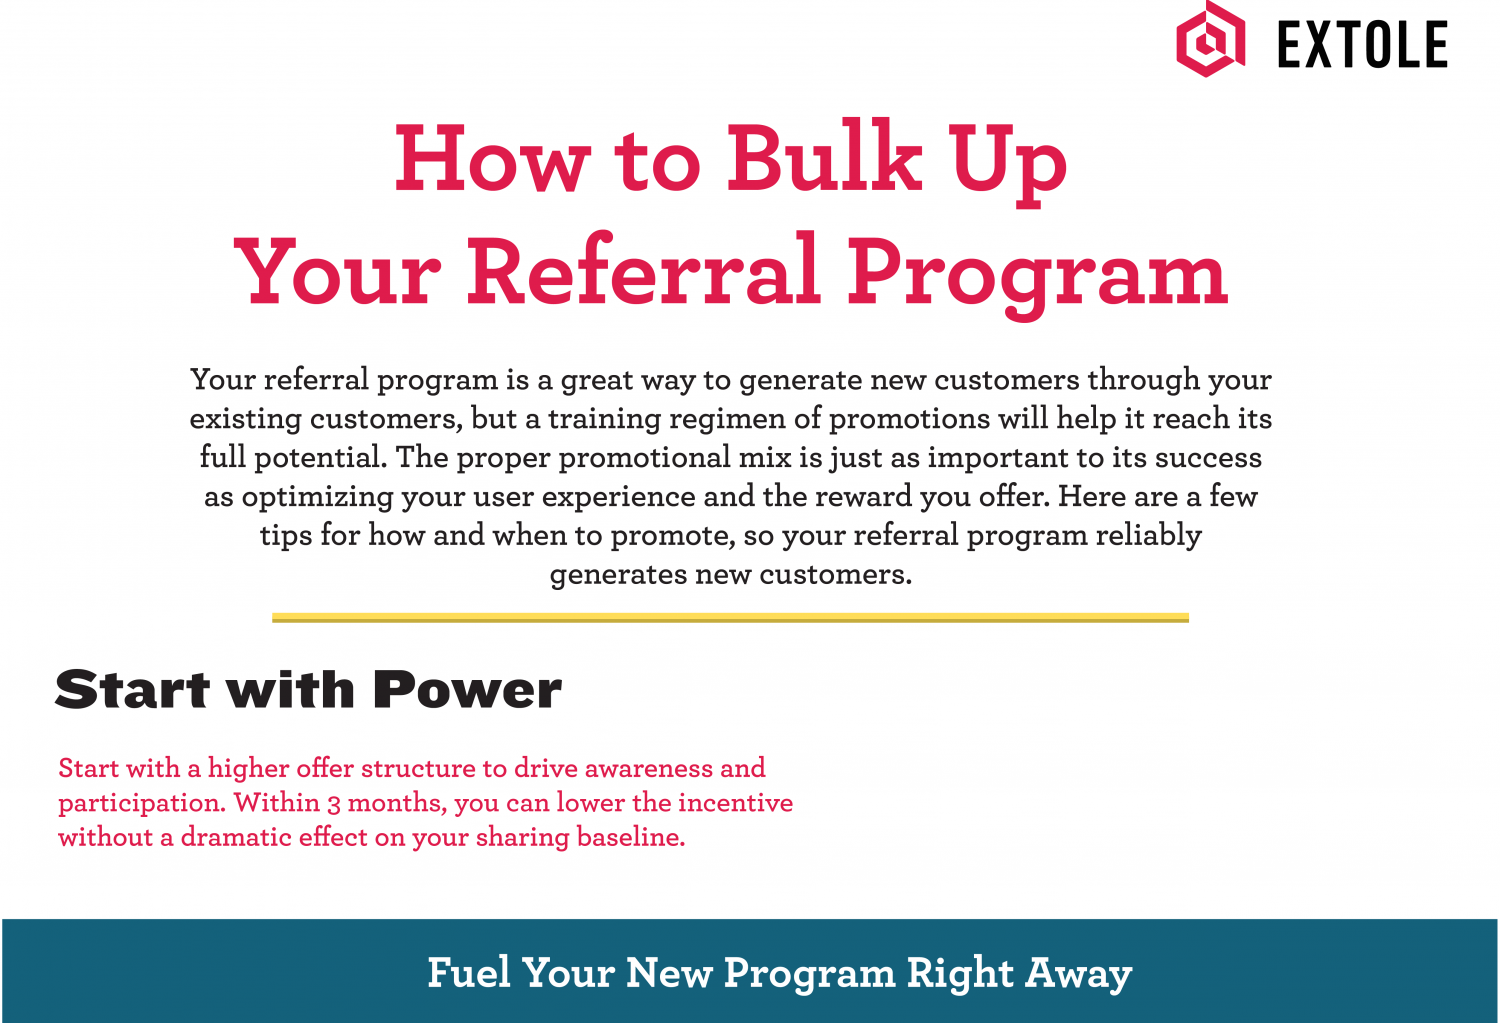 How to Bulk Up Your Referral Program Infographic